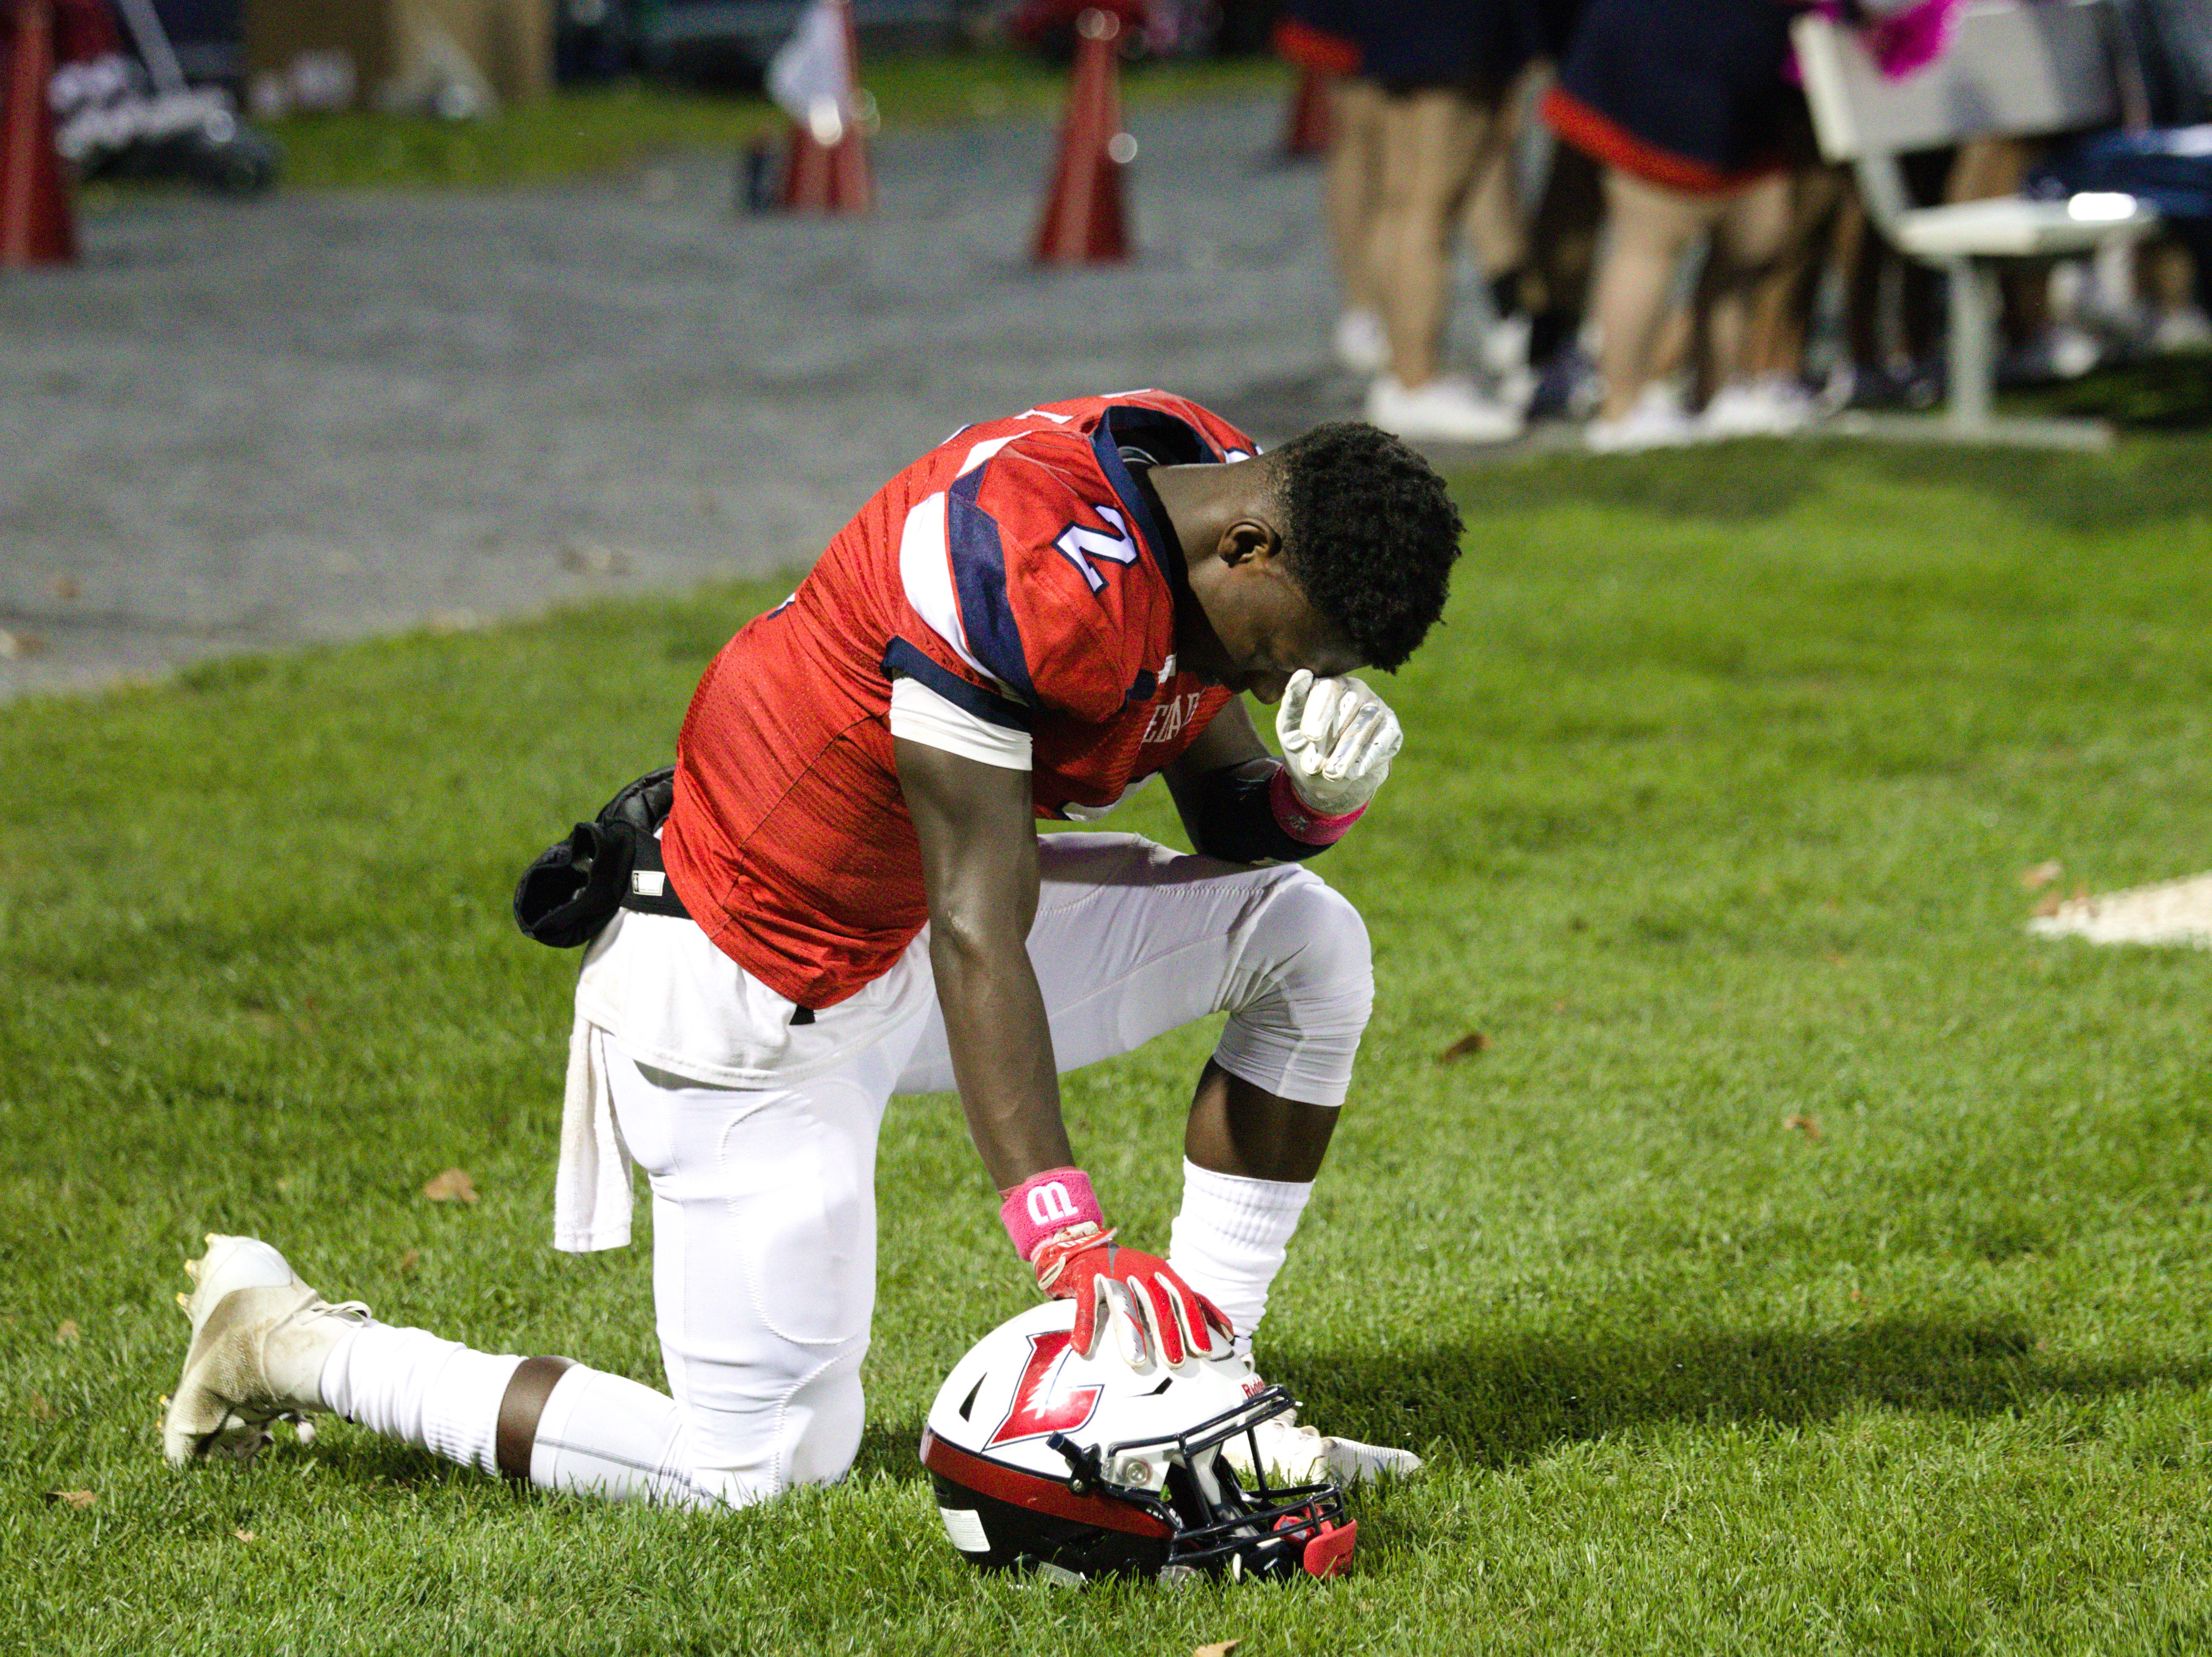 Lebanon's Jahlil Young takes a break from the action and composes himself.